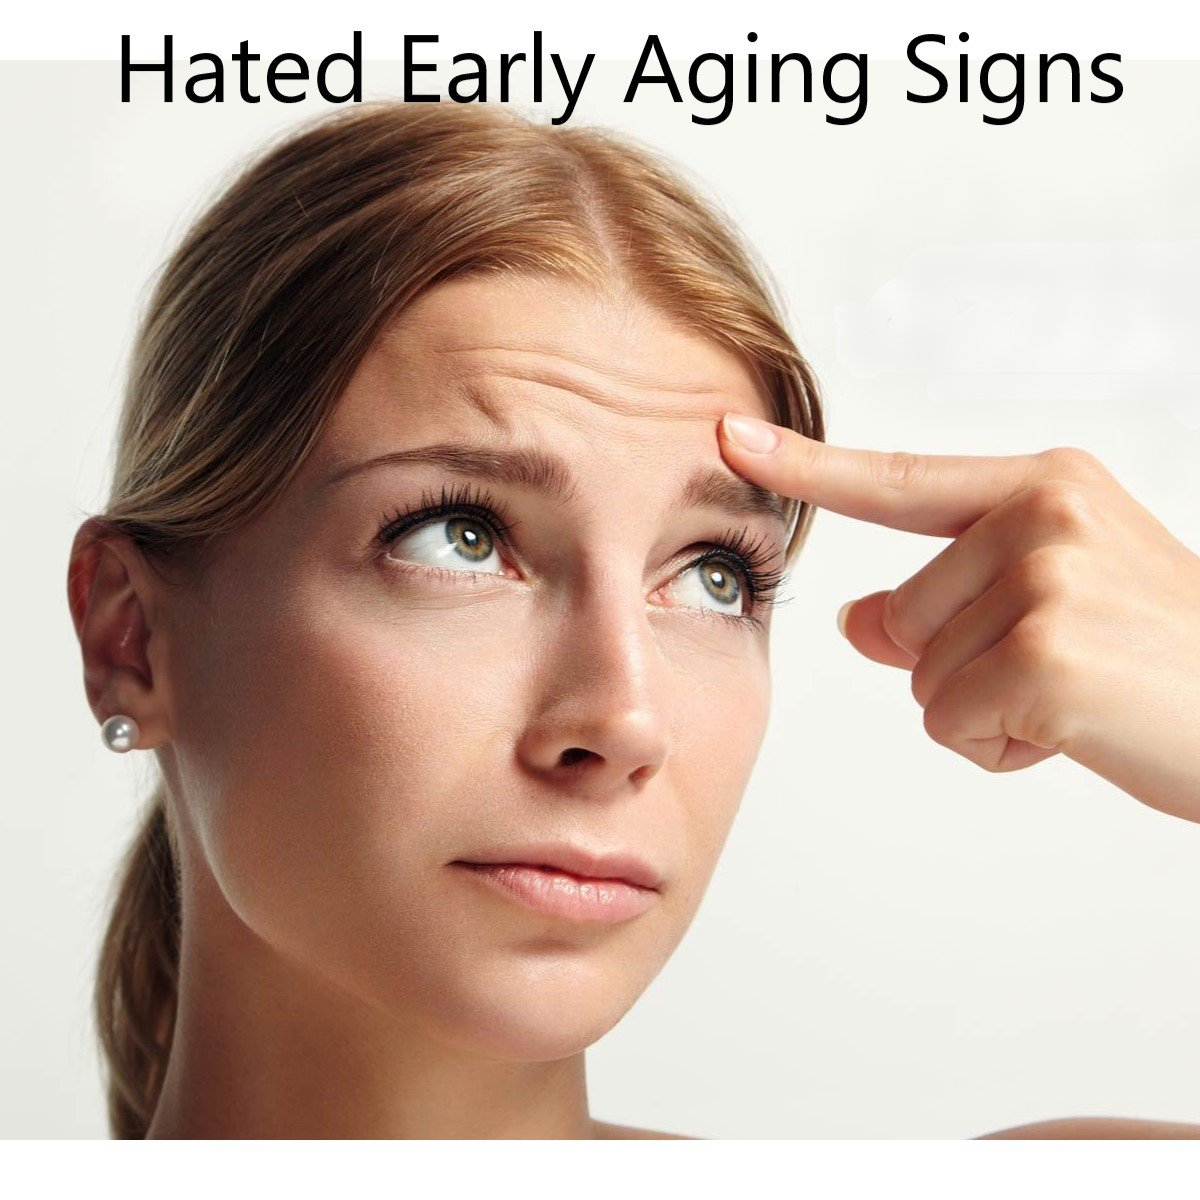 What to do About the Early Signs of Facial Aging